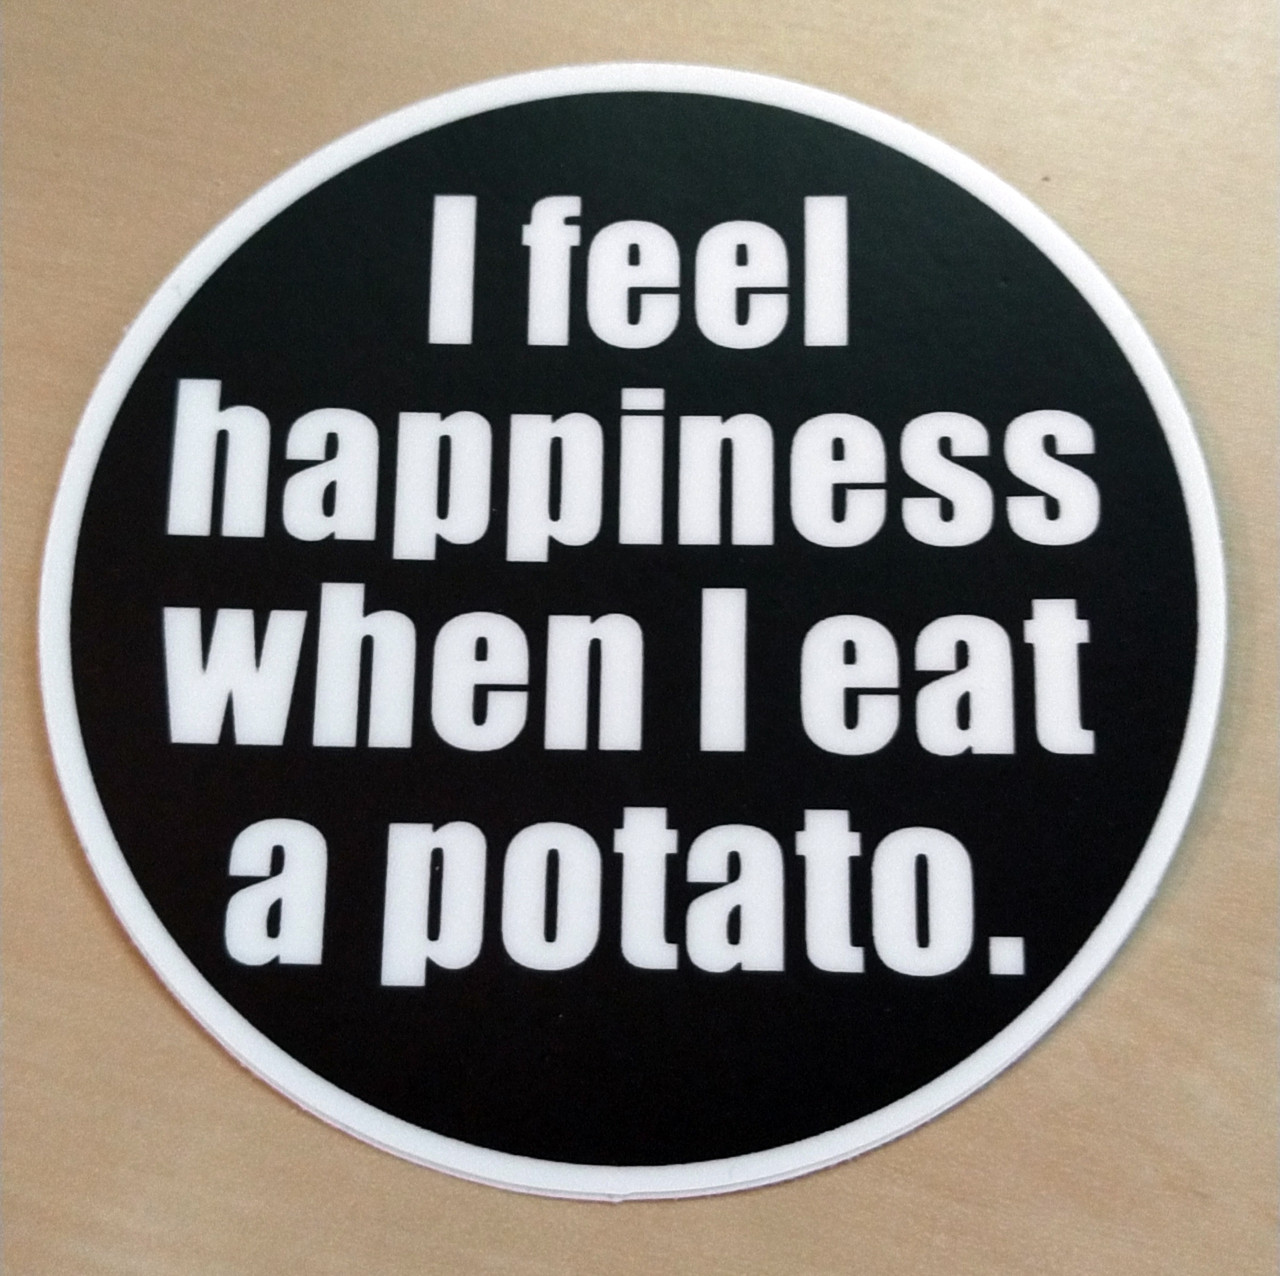 "Set of 2 I Feel Happiness When I Eat a Potato 3"" Vinyl Decal Stickers -2-pack"